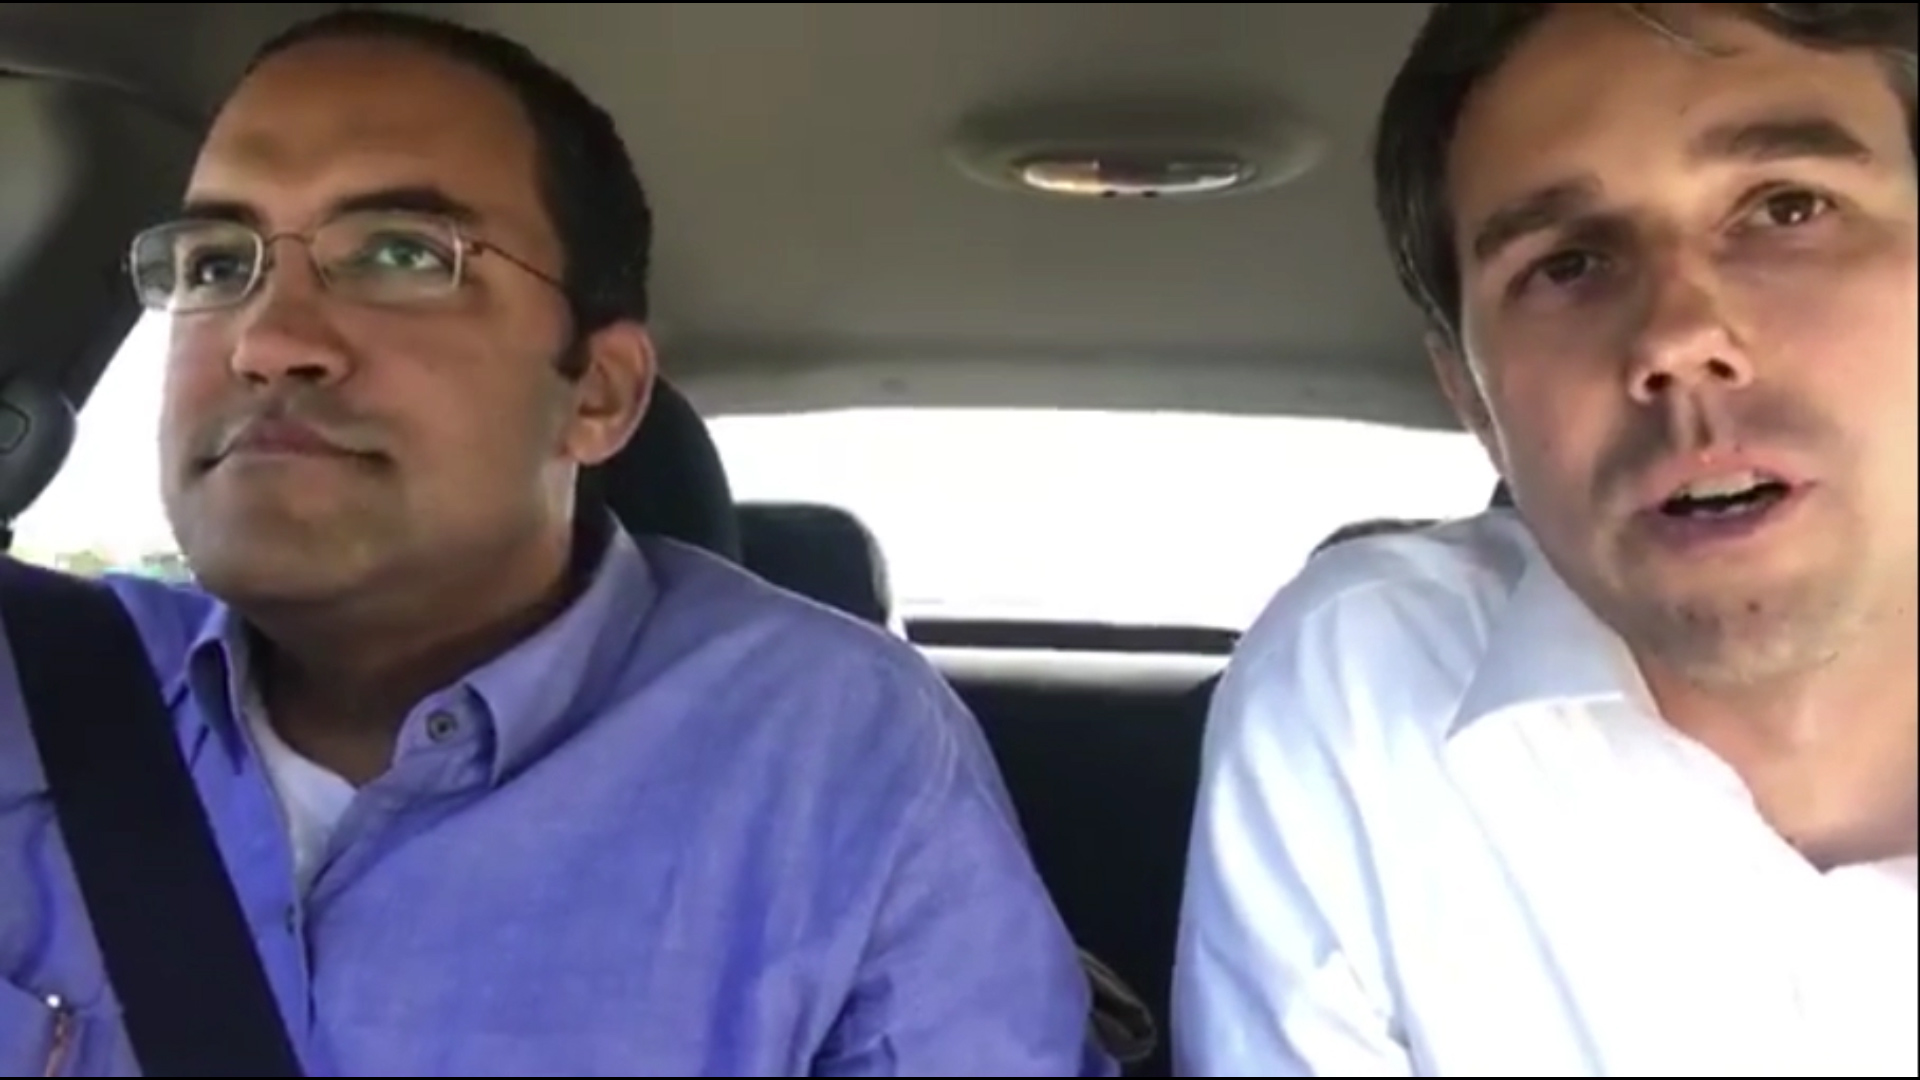 Snow forces two congressmen on a bipartisan road trip from Texas to D.C. — singing along the way